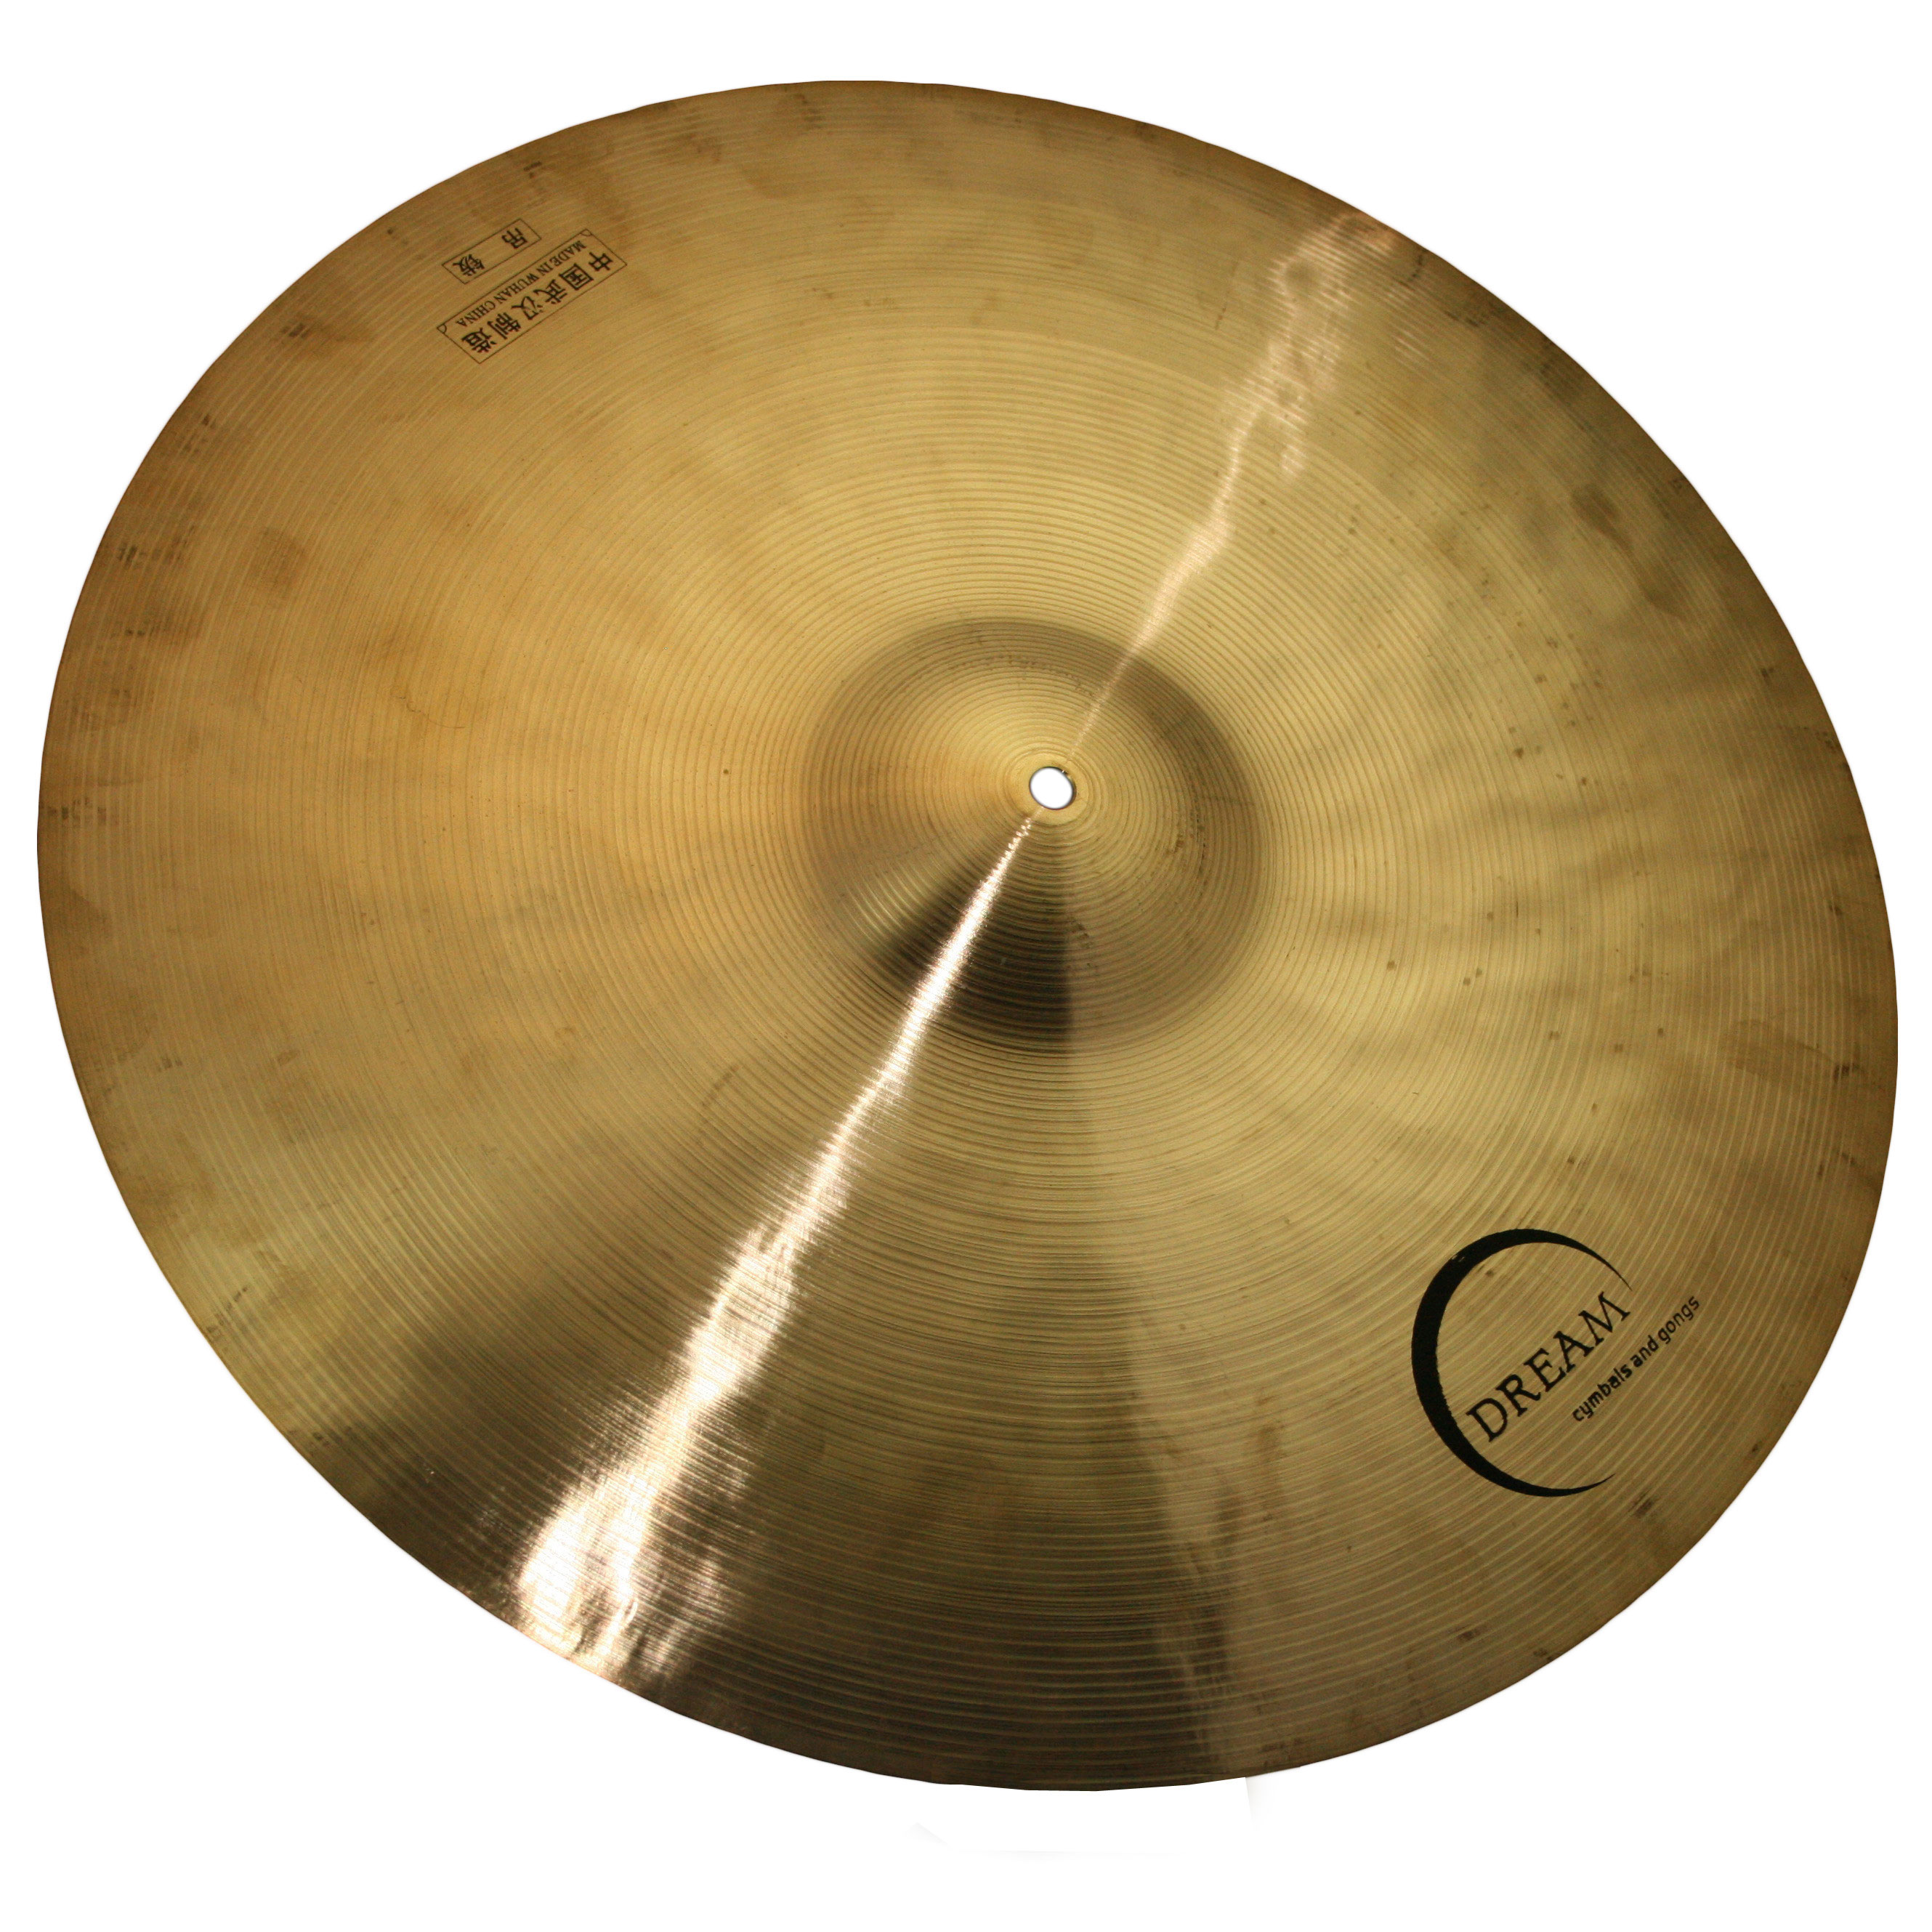 "Dream 22"" Contact Crash/Ride Cymbal"